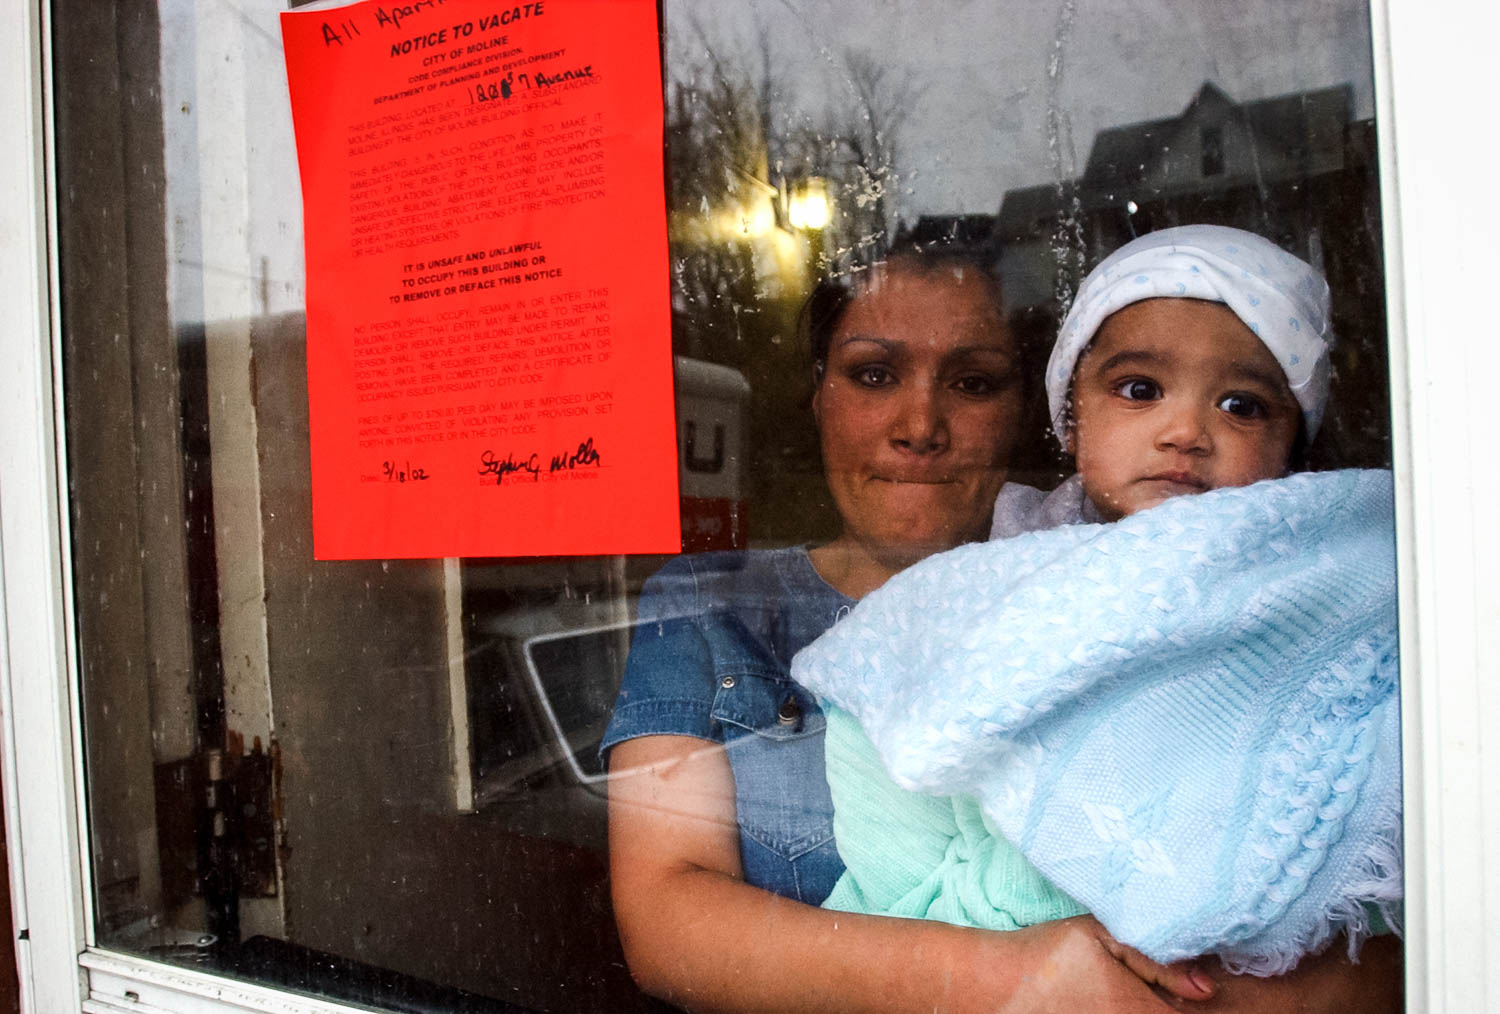 Luzmaria Carpia and her 7-month son Alejandero watch their friends and neighbors load their belongings into trucks and cars after the city of Moline evicted the apartment building's 10 families because safety violations. The families had less than one day of notice to move out. The mother of five children, whose husband is back in Mexico, didn't have any idea where she planned to go. (Todd Mizener - Dispatch/Argus)